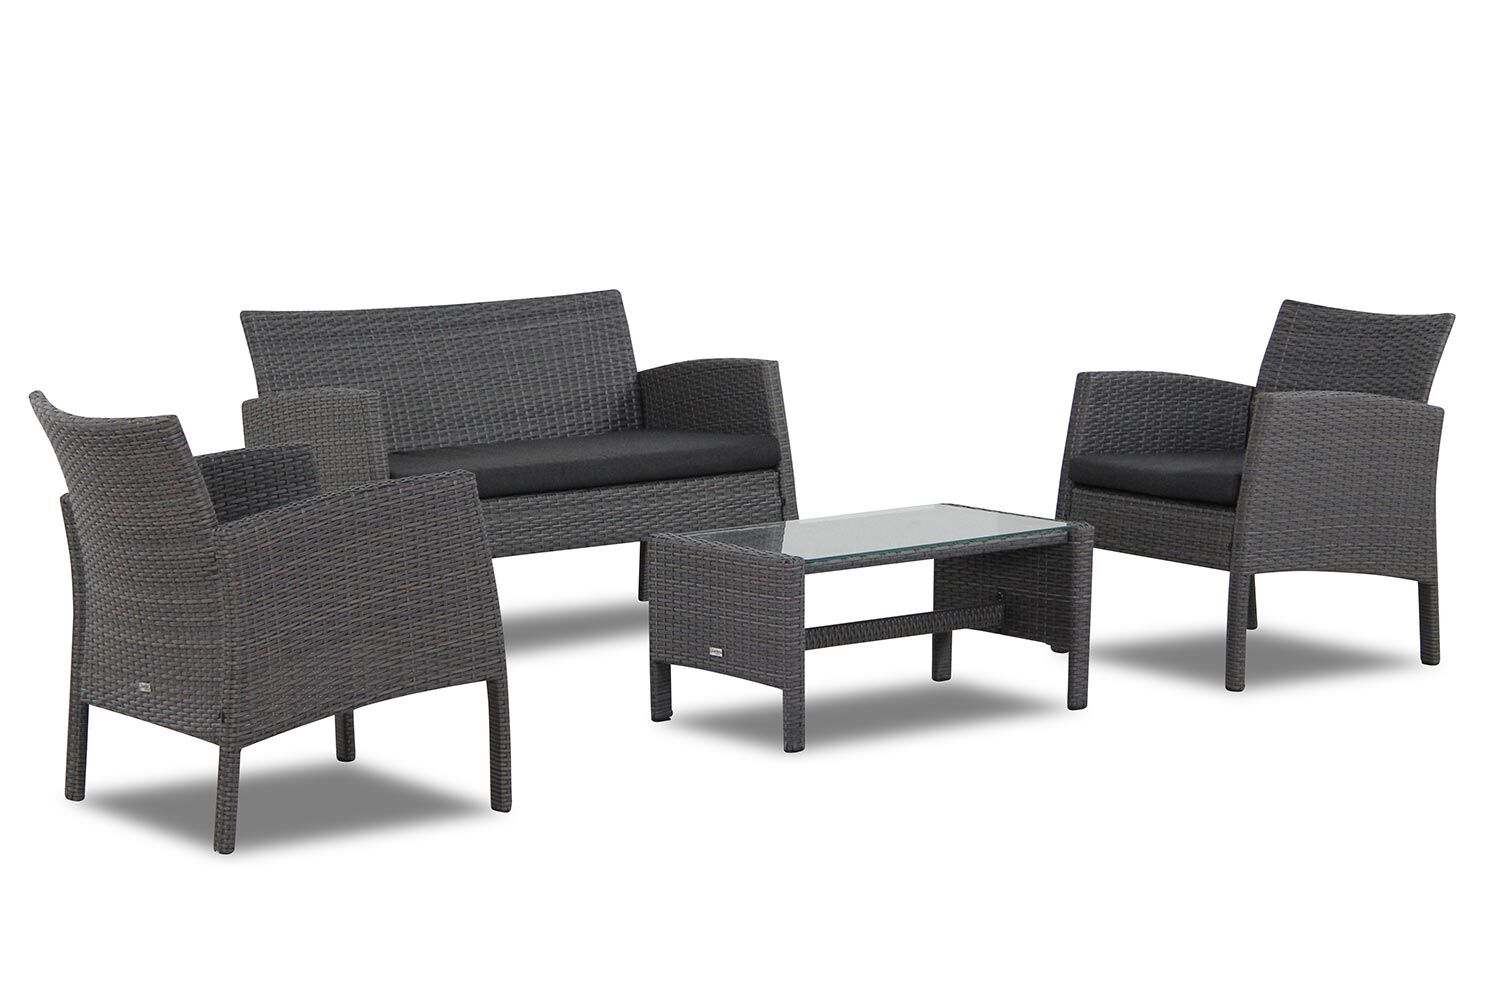 Garden Collections Alabama wicker loungeset